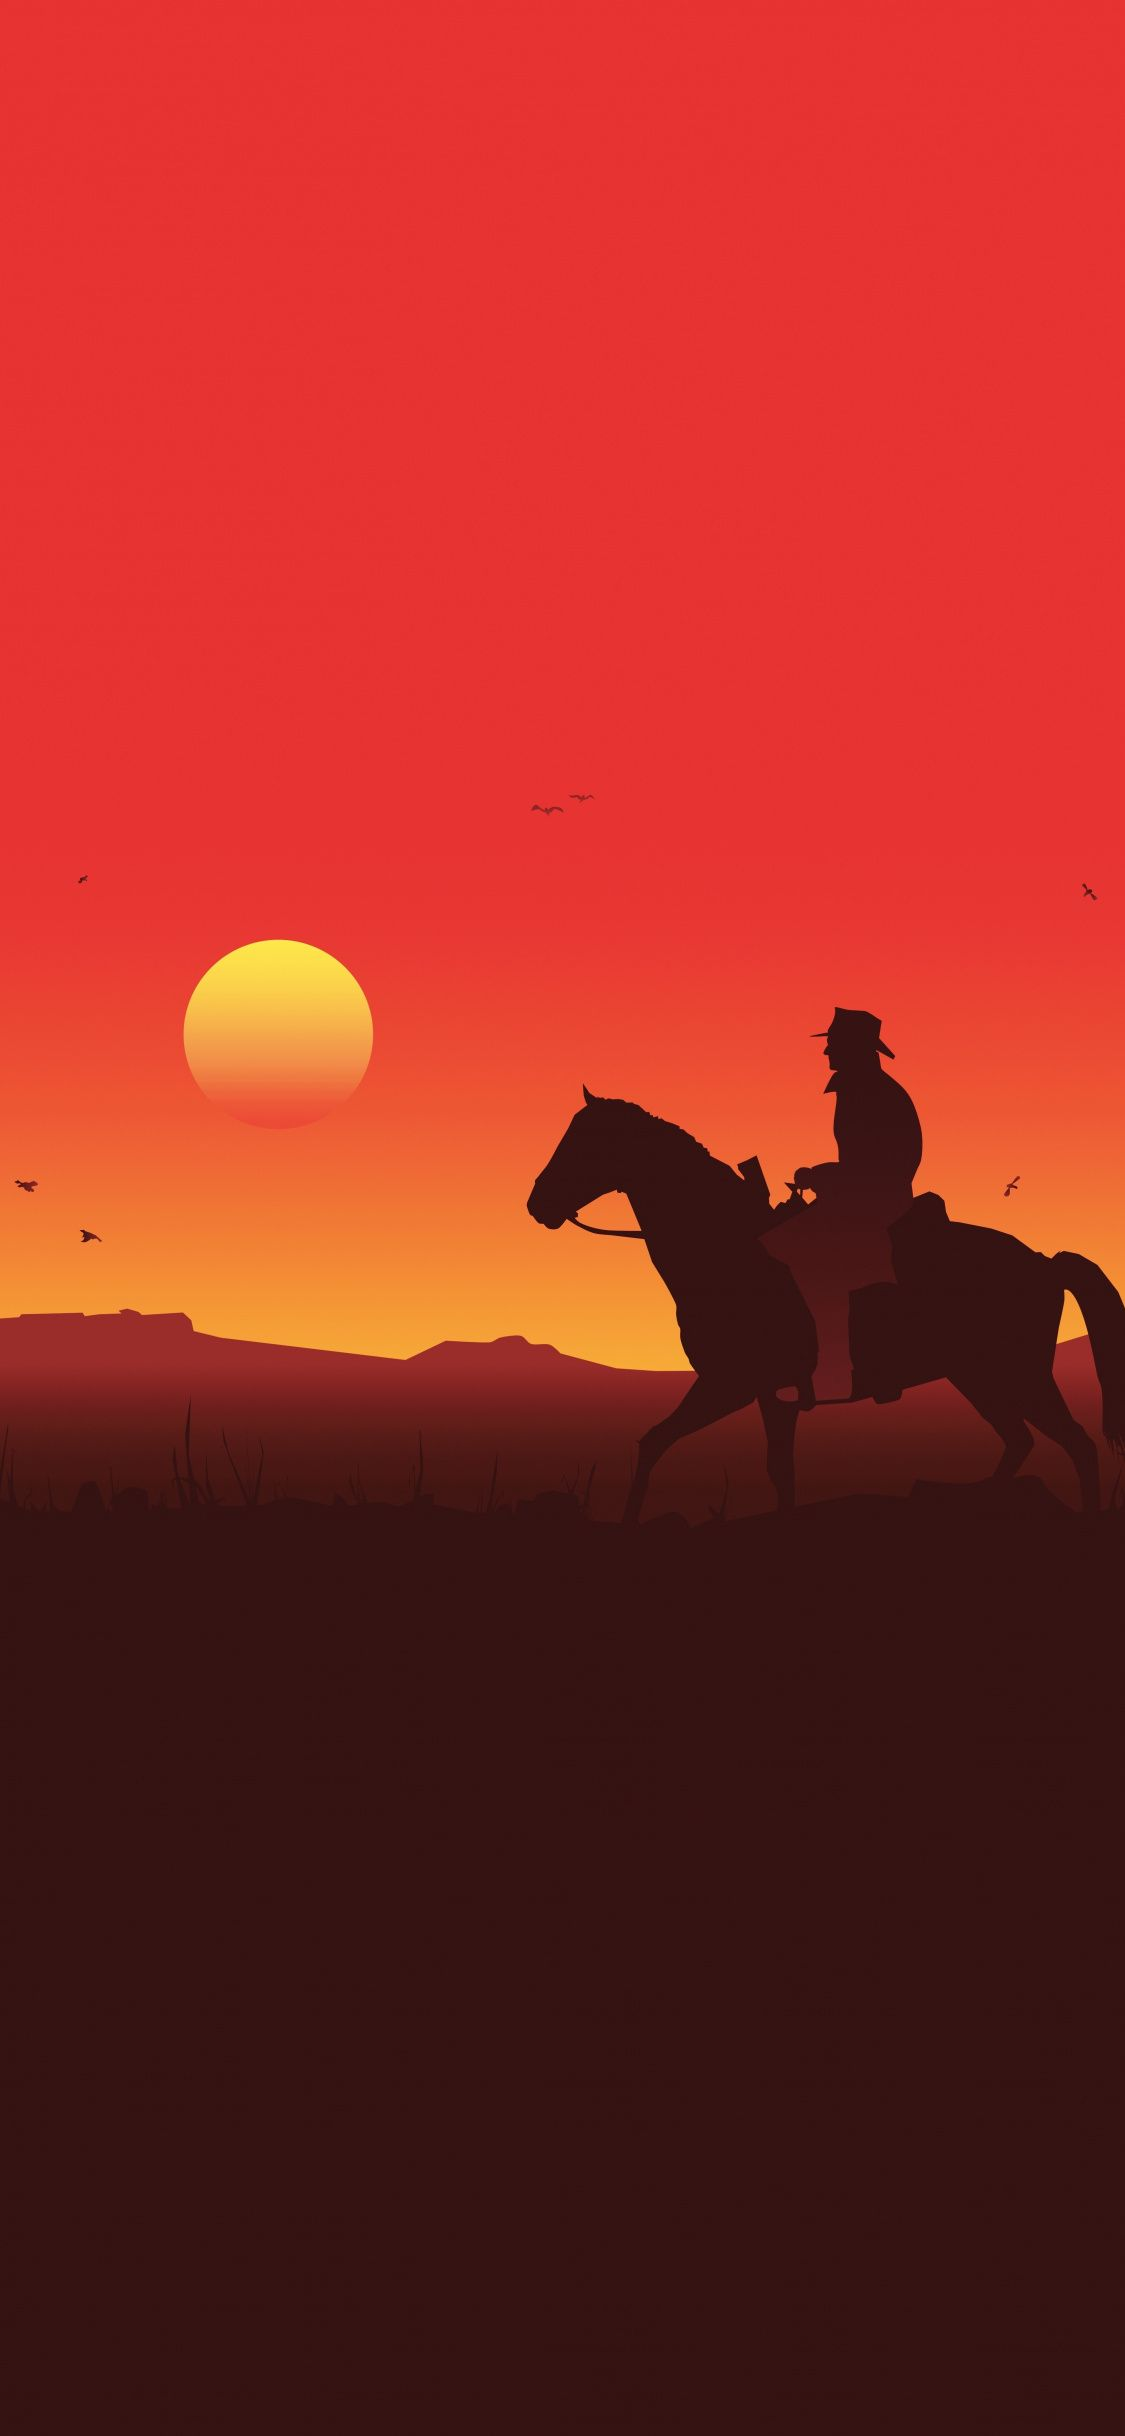 Silhouette Red Dead Redemption 2 Sunset 2018 1125x2436 Wallpaper Red Dead Redemption Artwork Red Dead Redemption Art Red Dead Redemption